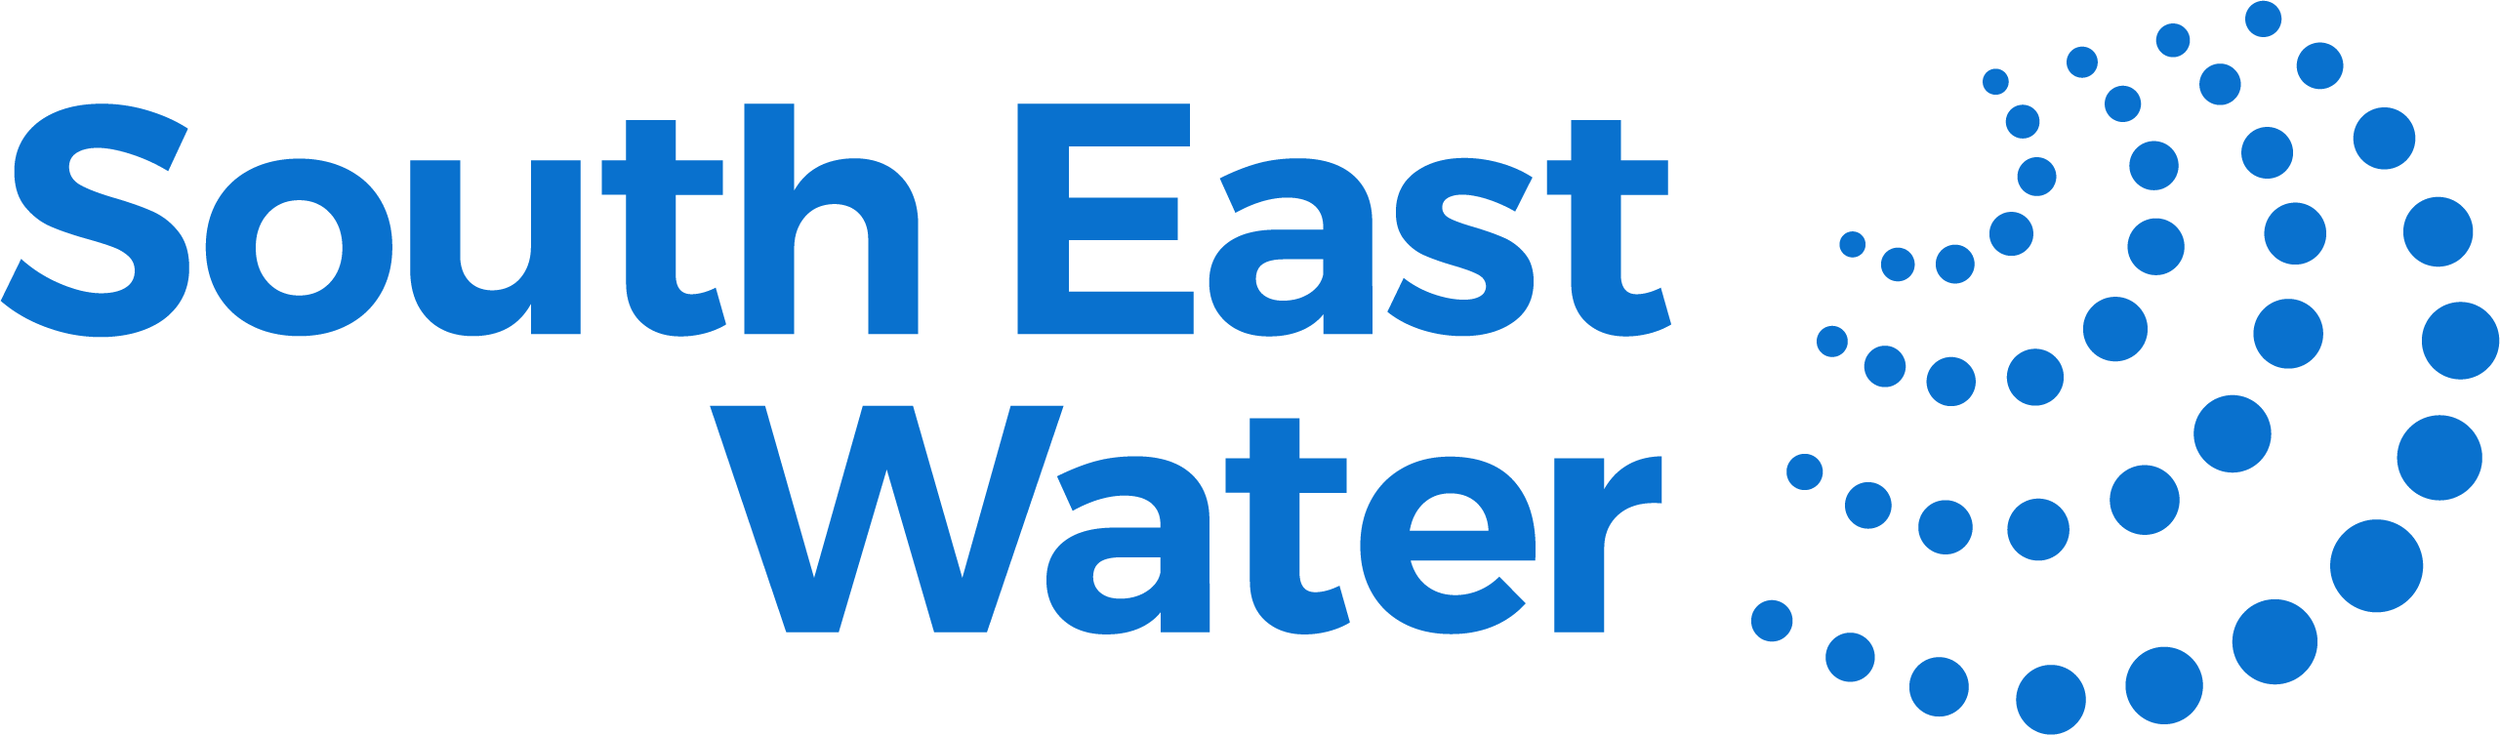 South East Water.png